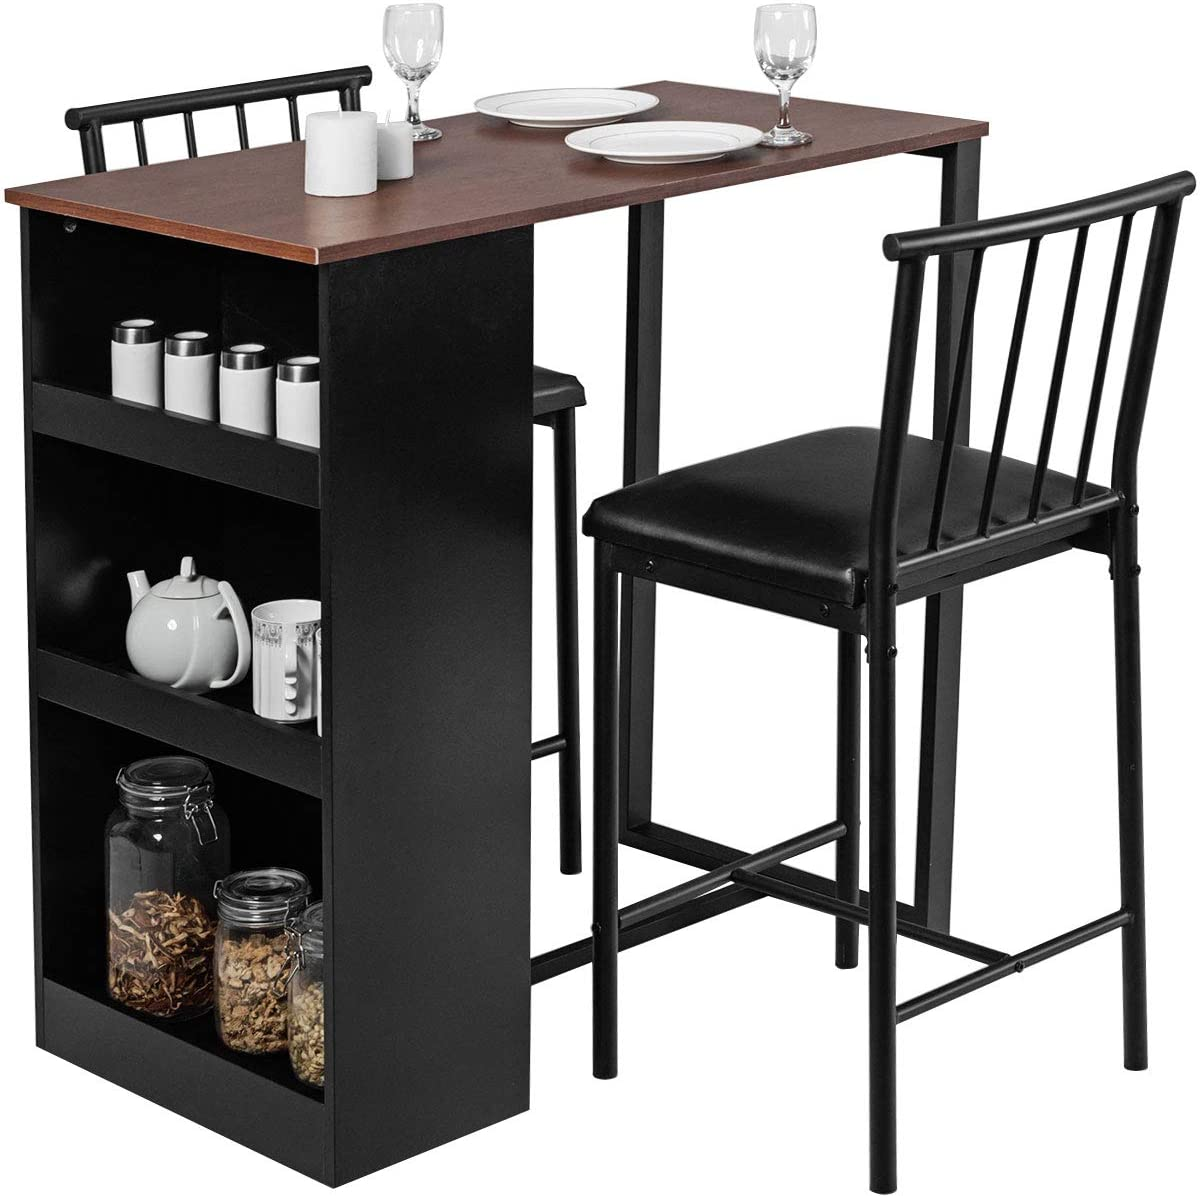 Combohome 9 Piece Pub Dining Set Wooden Counter Height Table Set ...